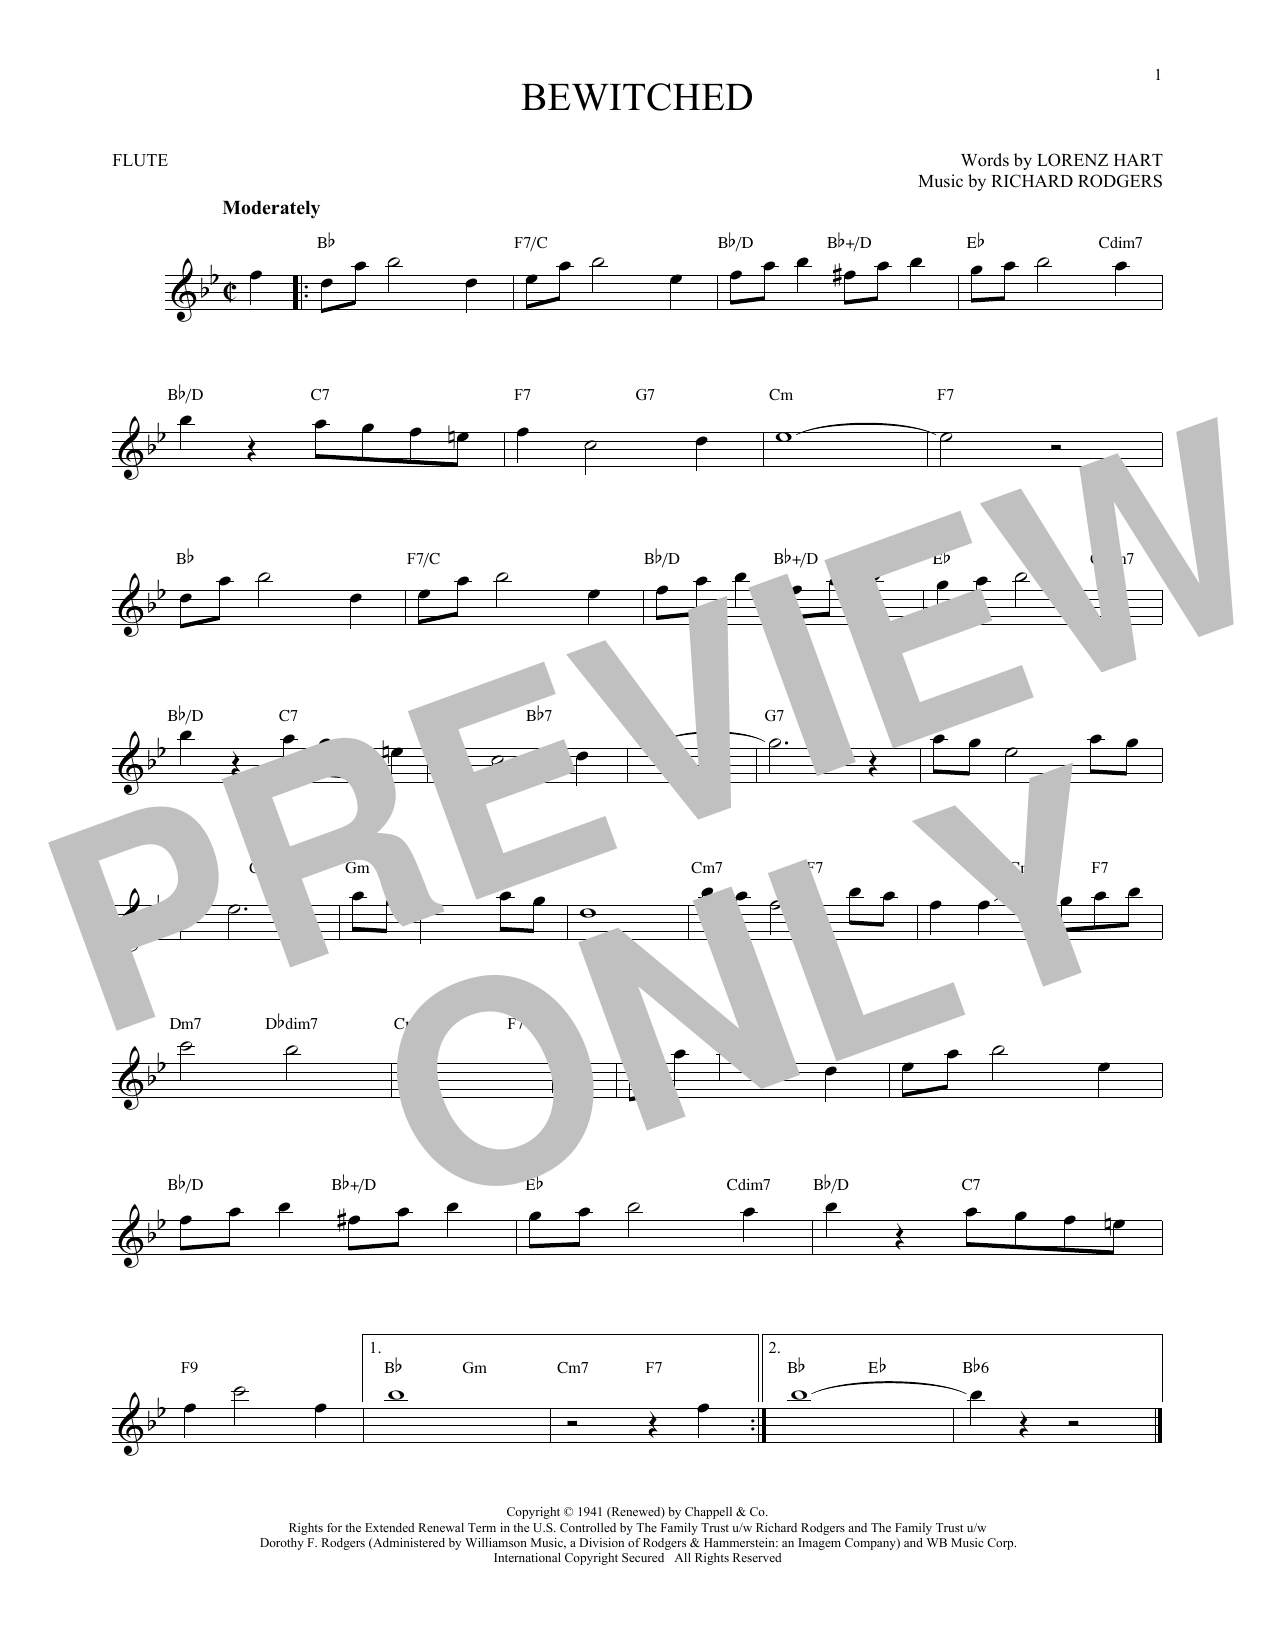 Bewitched (Flute Solo)